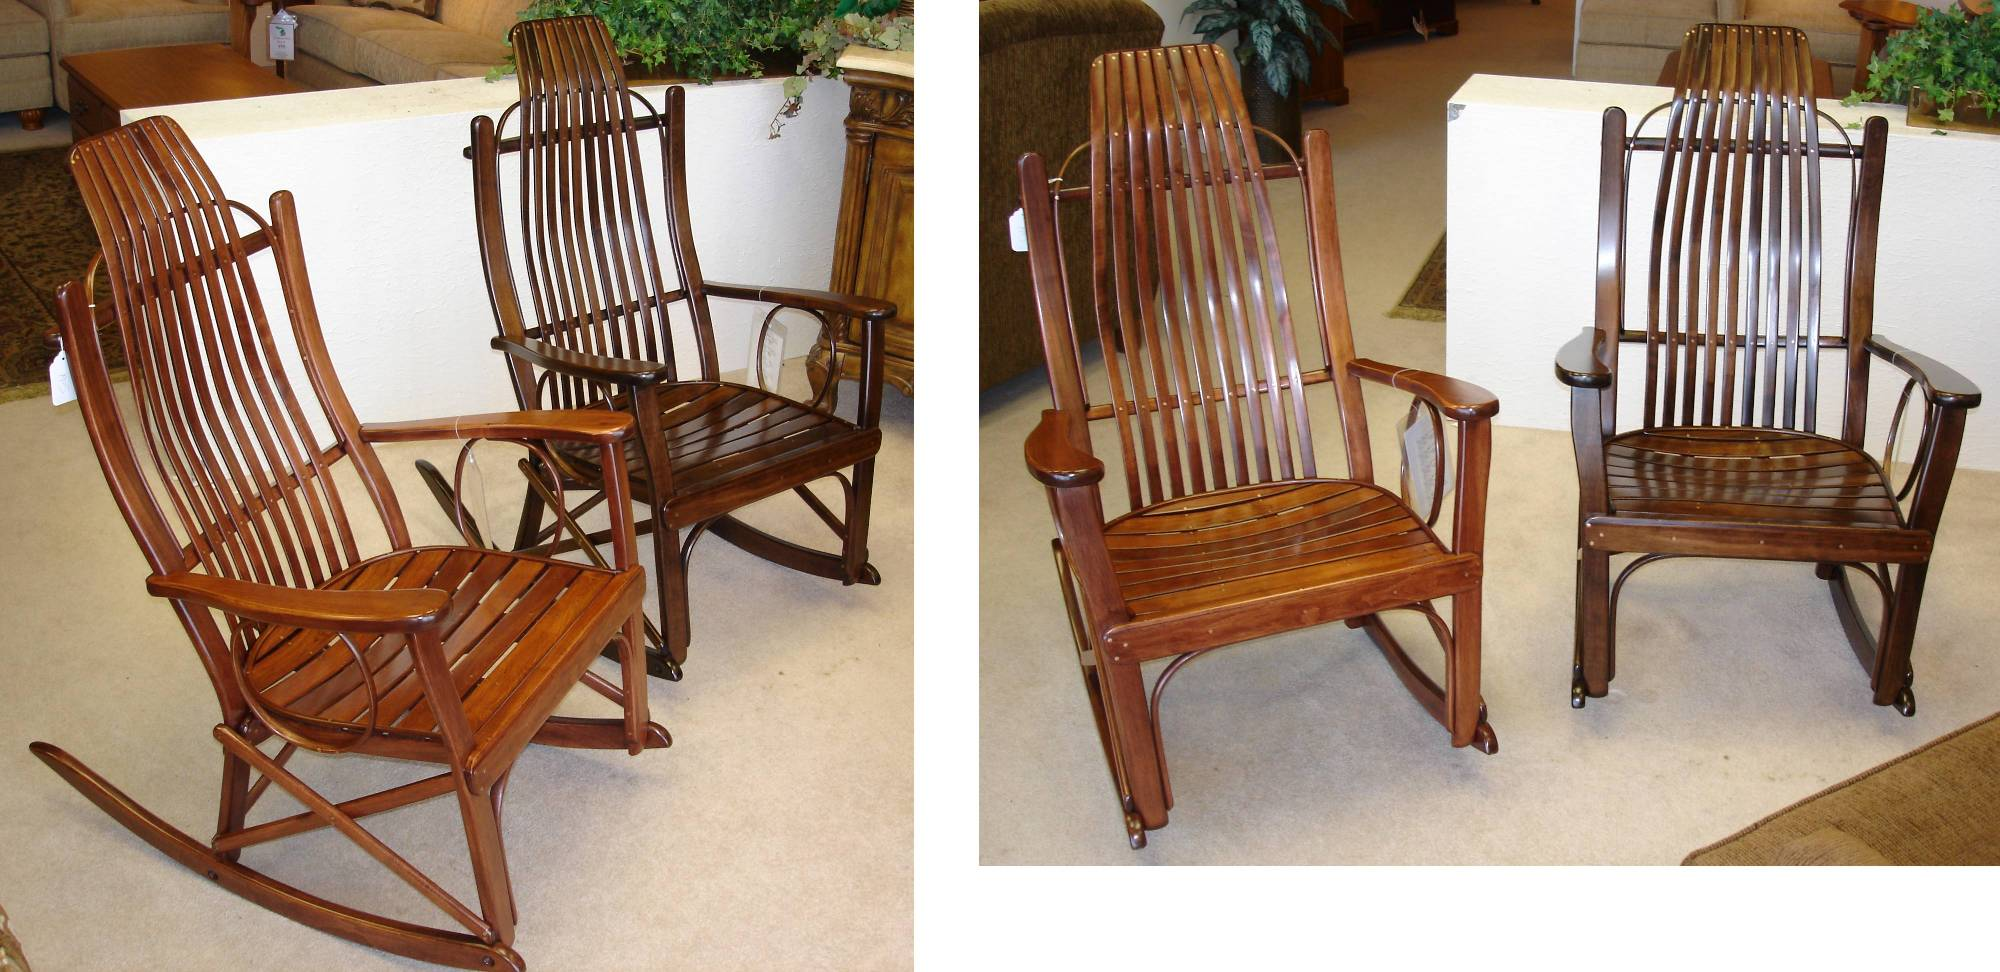 amish rocking chair & Amish Rocking Chair. Jasenu0027s Furniture Roseville Michigan